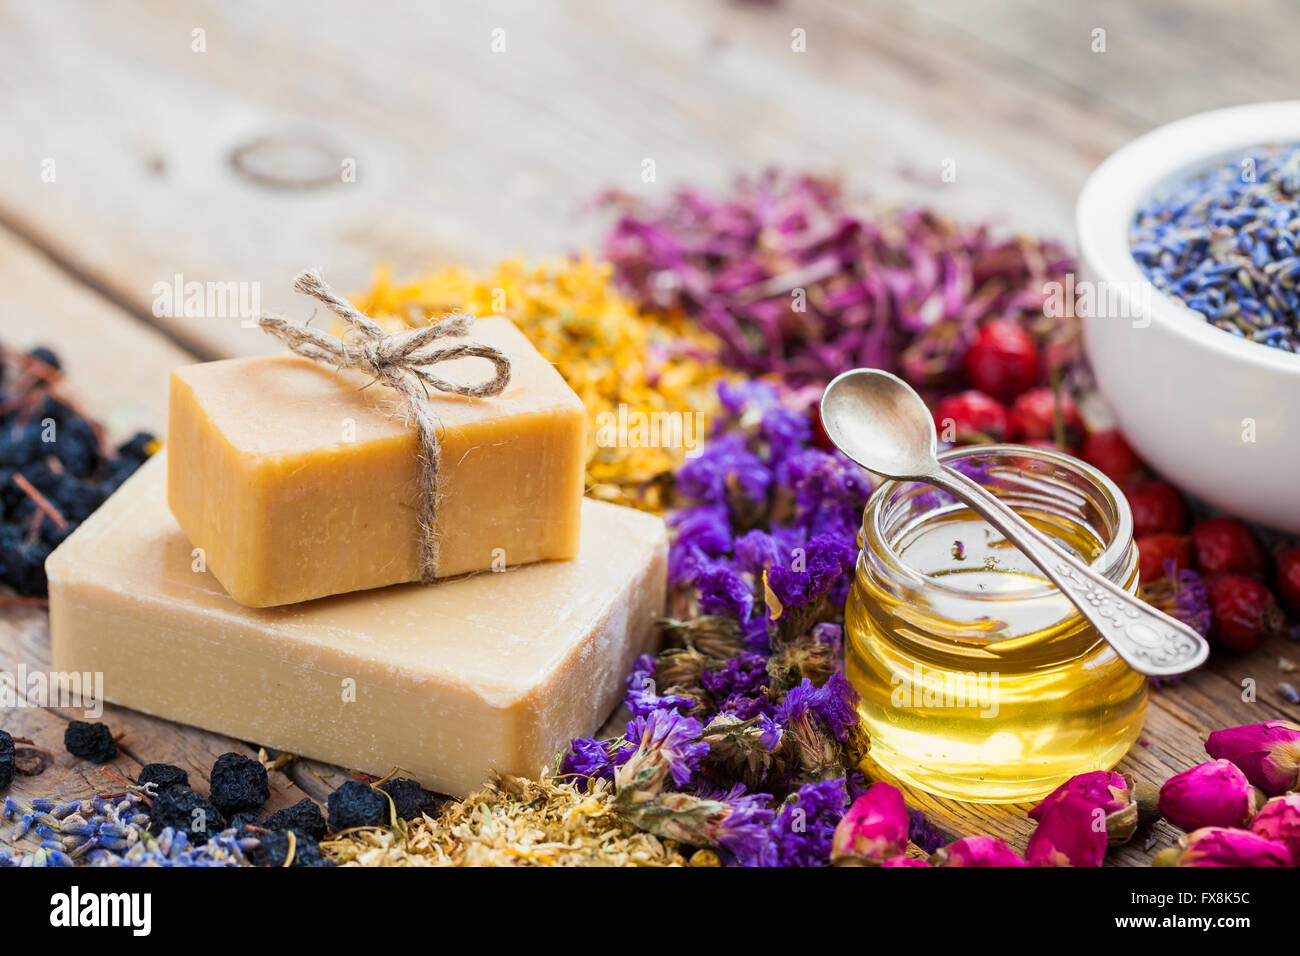 Bars of homemade soaps, honey or oil, heaps of healing herbs and mortar of lavender. Selective focus. - Stock Image